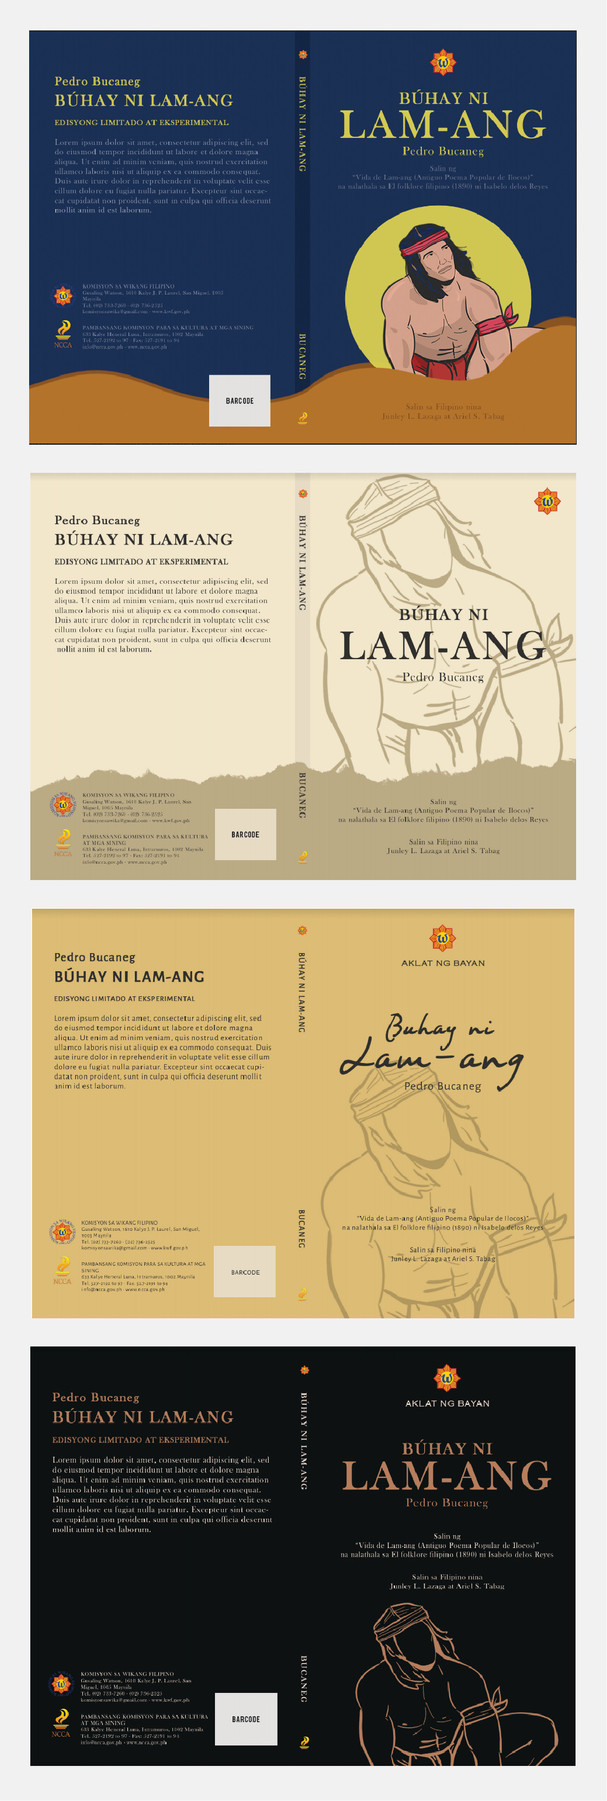 Lam-ang Book Cover Designs.jpg